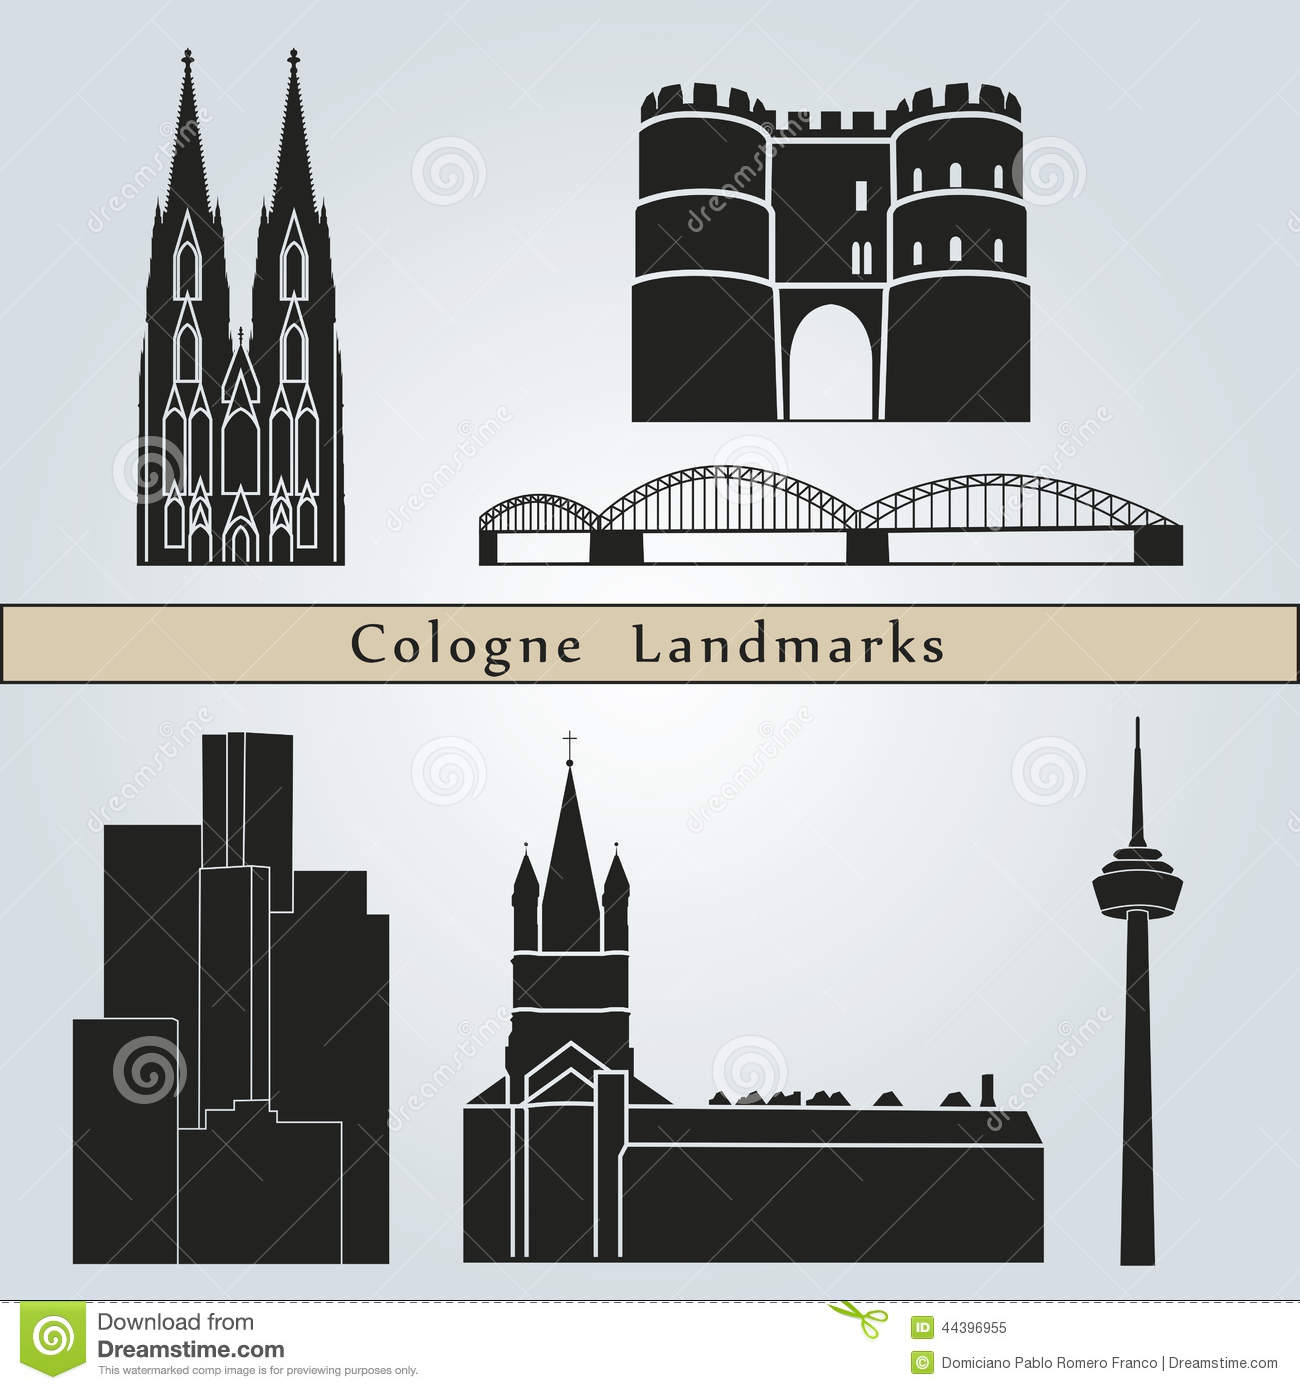 Cologne Landmarks Royalty Free Stock Photo